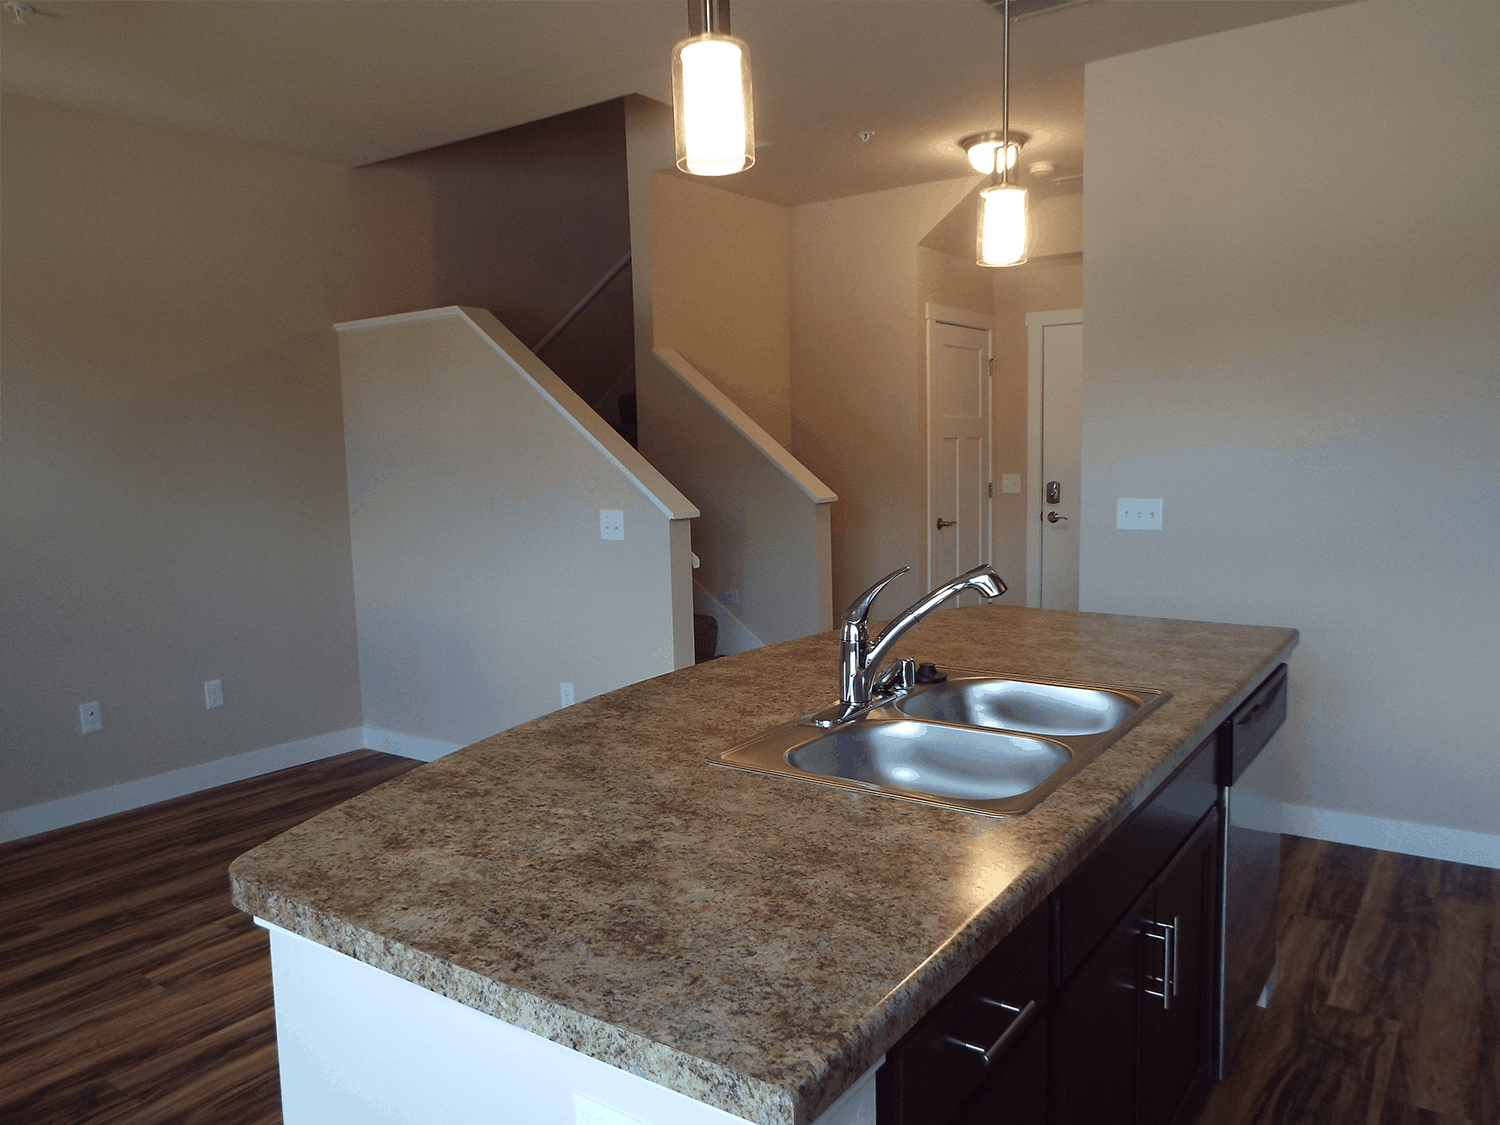 Townhomes kitchen Sink area